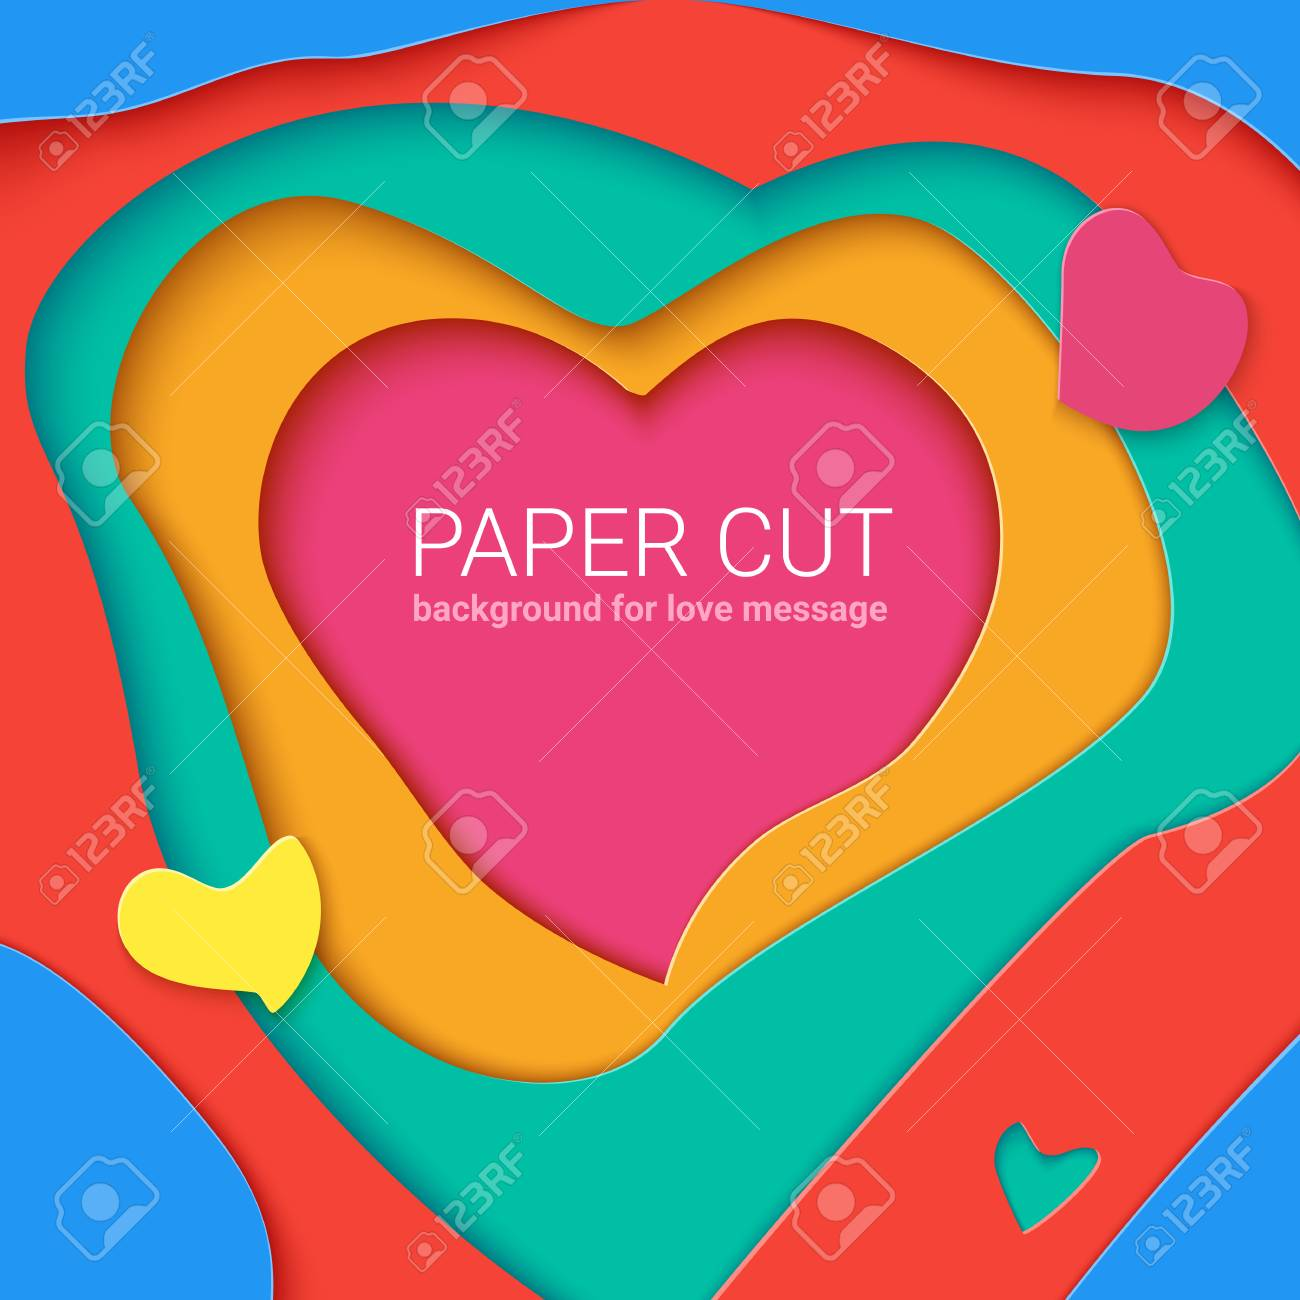 Templates With Paper Cut In Shapes Of Heart Modern Abstract